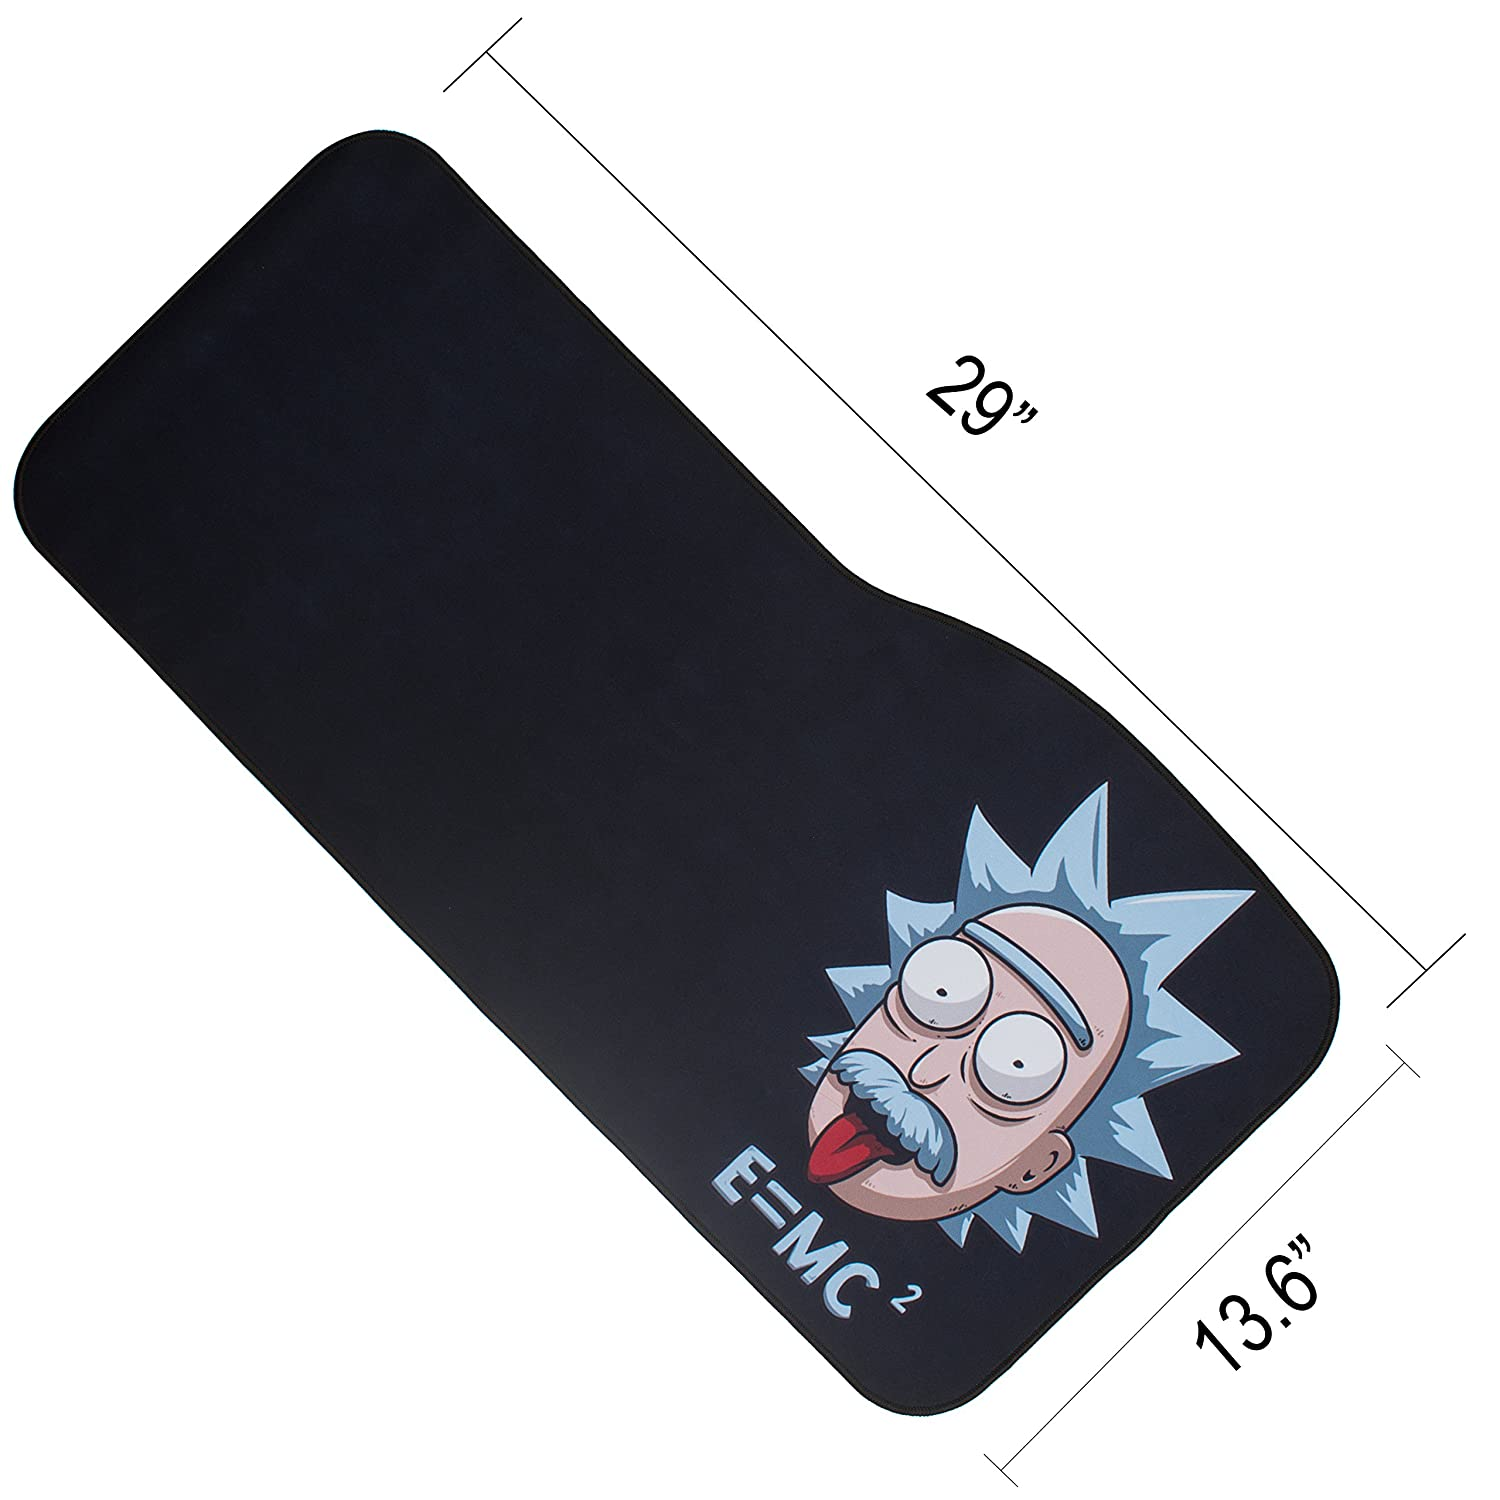 29 x 13.8 x 0.12 X-Large Mouse Keyboard Desk Mat for Computer Laptop Curve Design Gaming Mouse pad Stitched Edges /& Skid Proof Rubber Base BRILA Extended Mouse pad Battle Royal Game